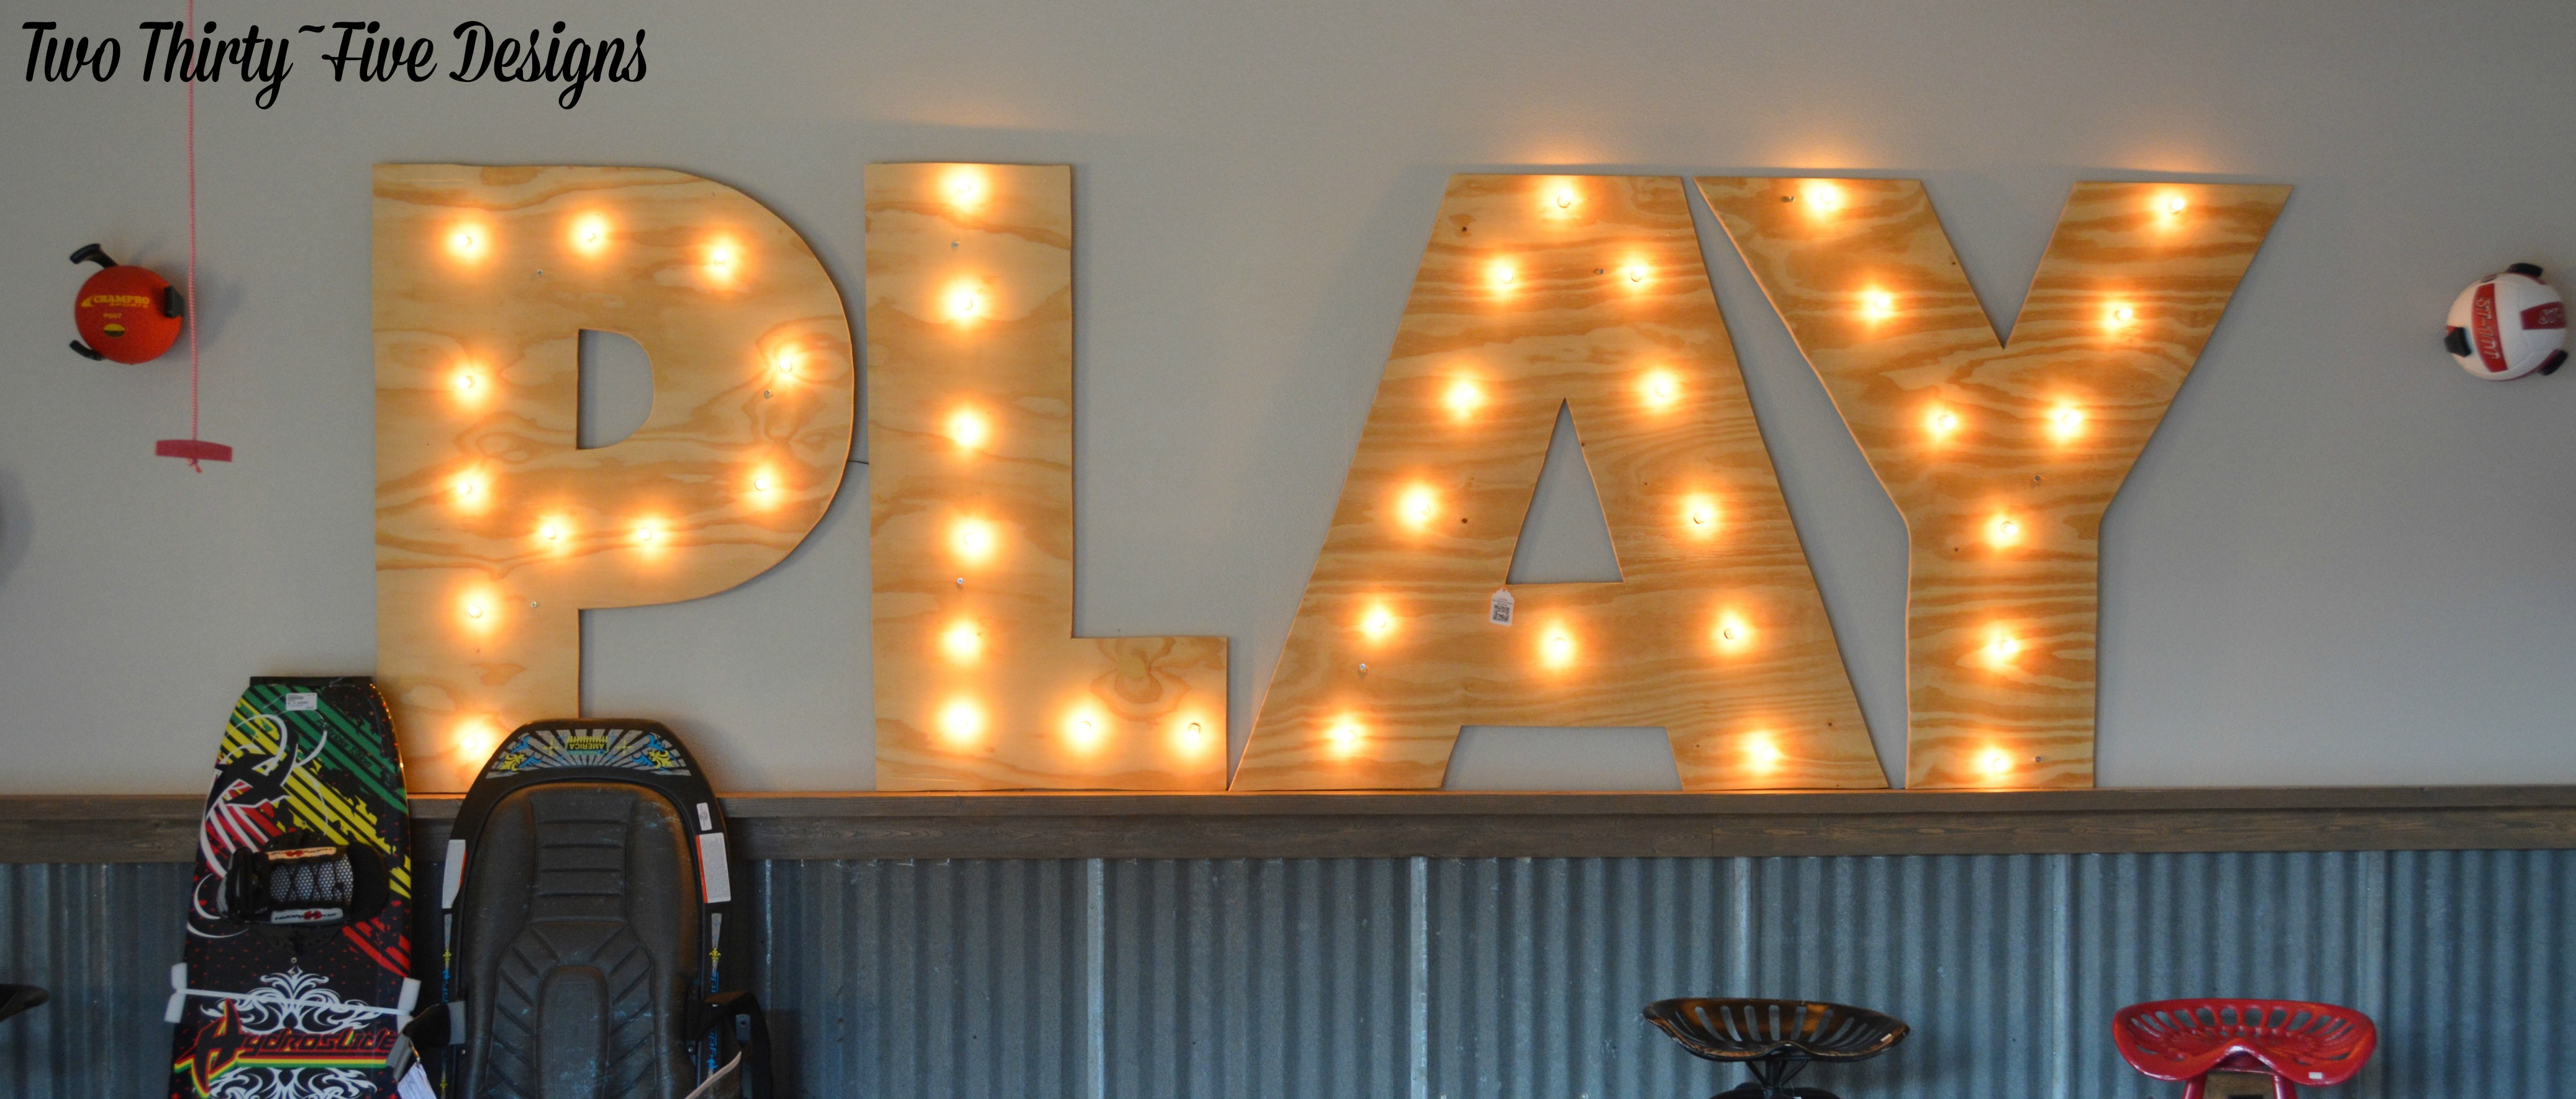 light up wall letters diy marquee letters two thirty five designs 23444 | Large DIY Marquee Letters by TwoThirtyFiveDesigns